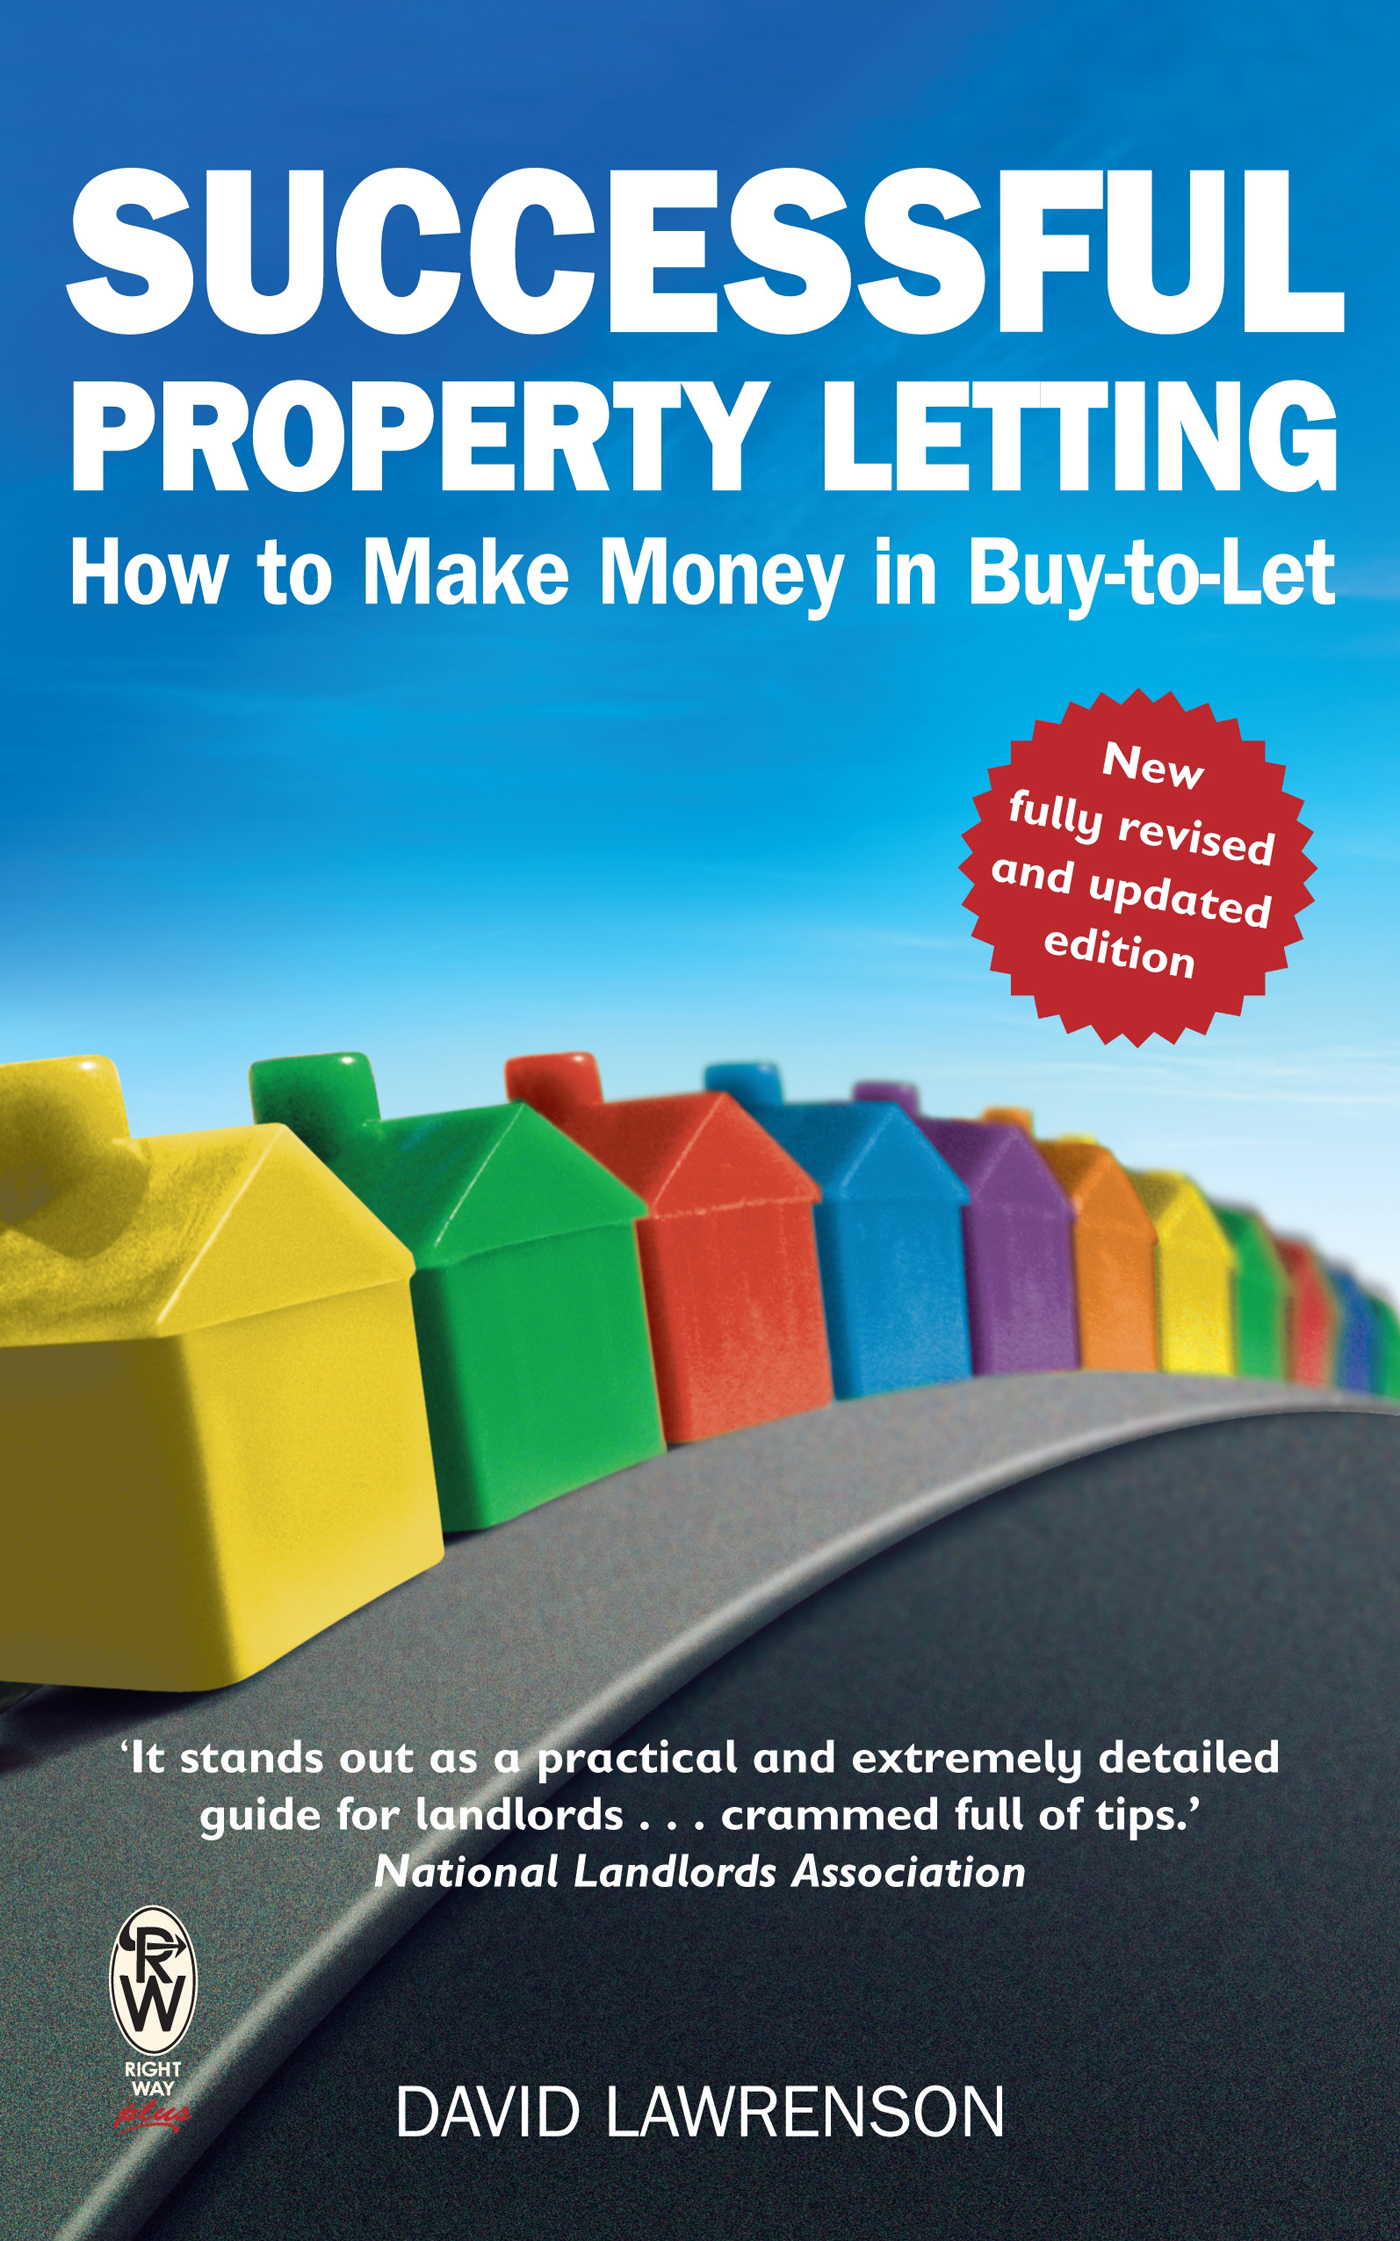 Successful Property Letting:How to Make Money in Buy-to-let